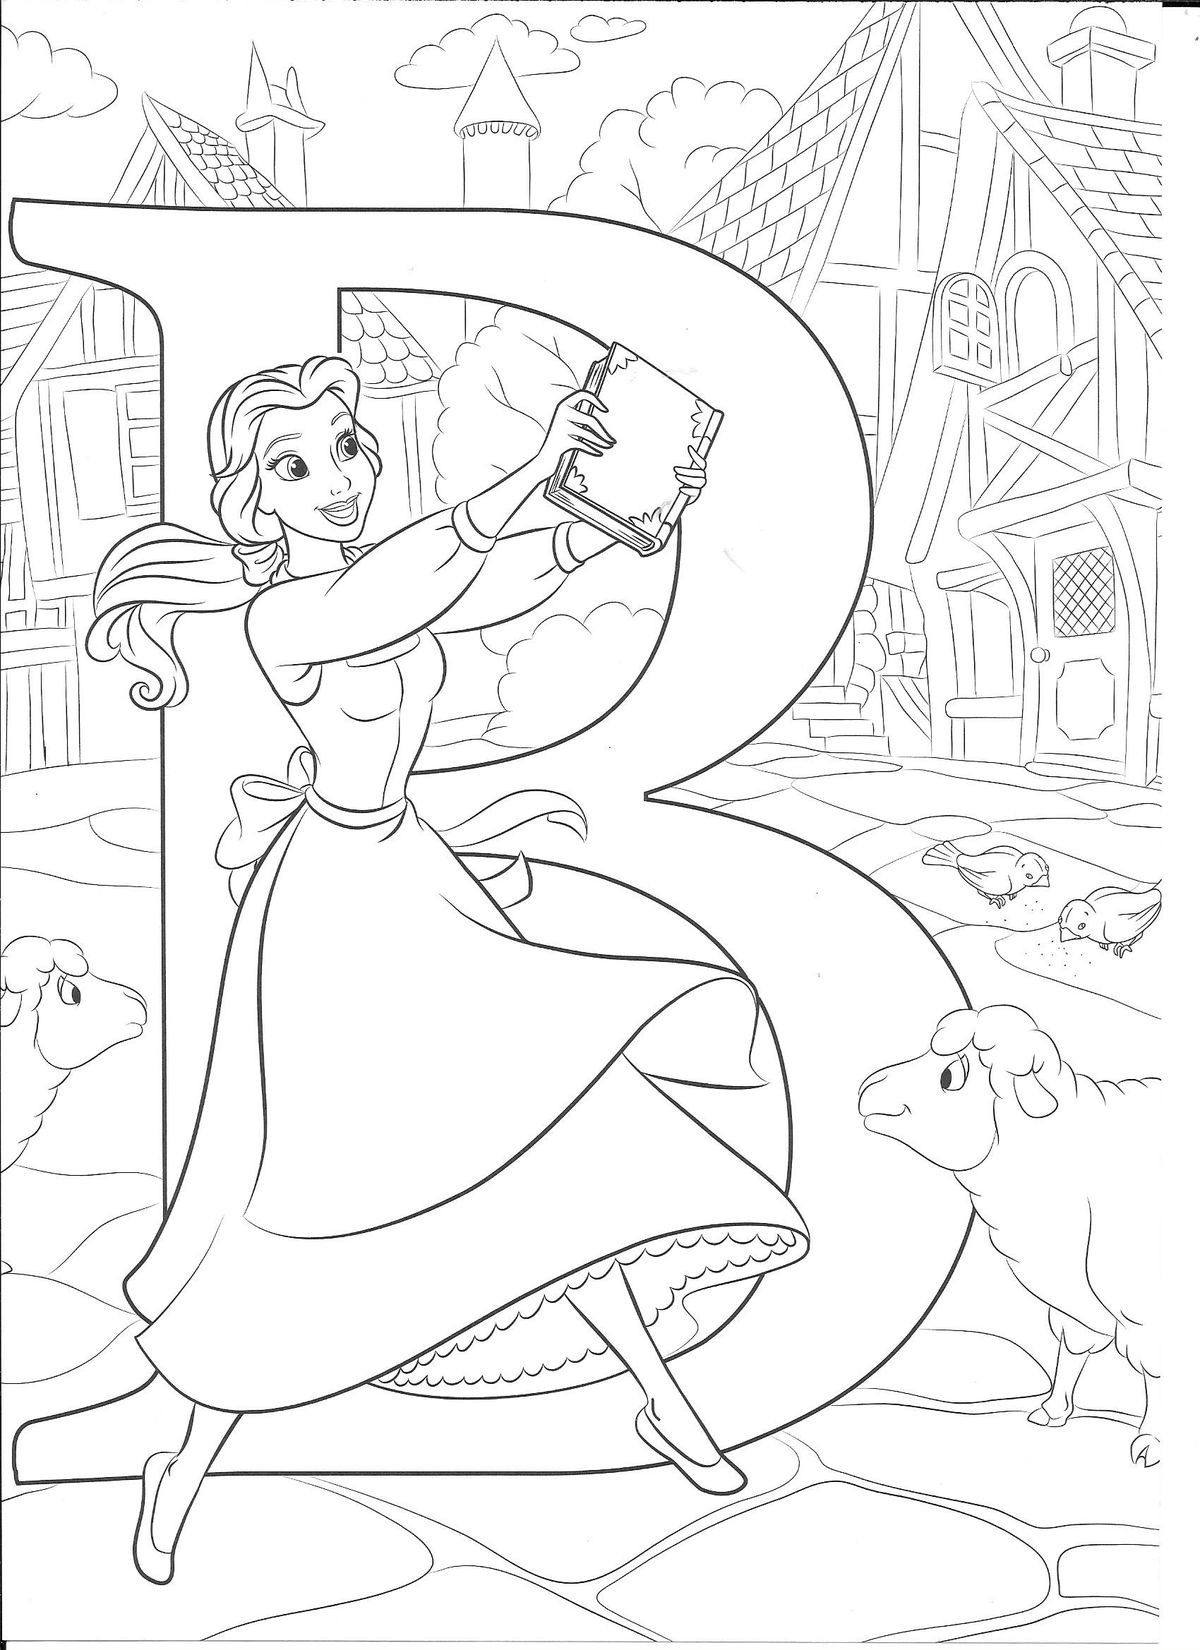 Pin By Funki Duck On Alphabet Coloring Sheets Belle Coloring Pages Disney Coloring Sheets Disney Princess Coloring Pages [ 1650 x 1200 Pixel ]